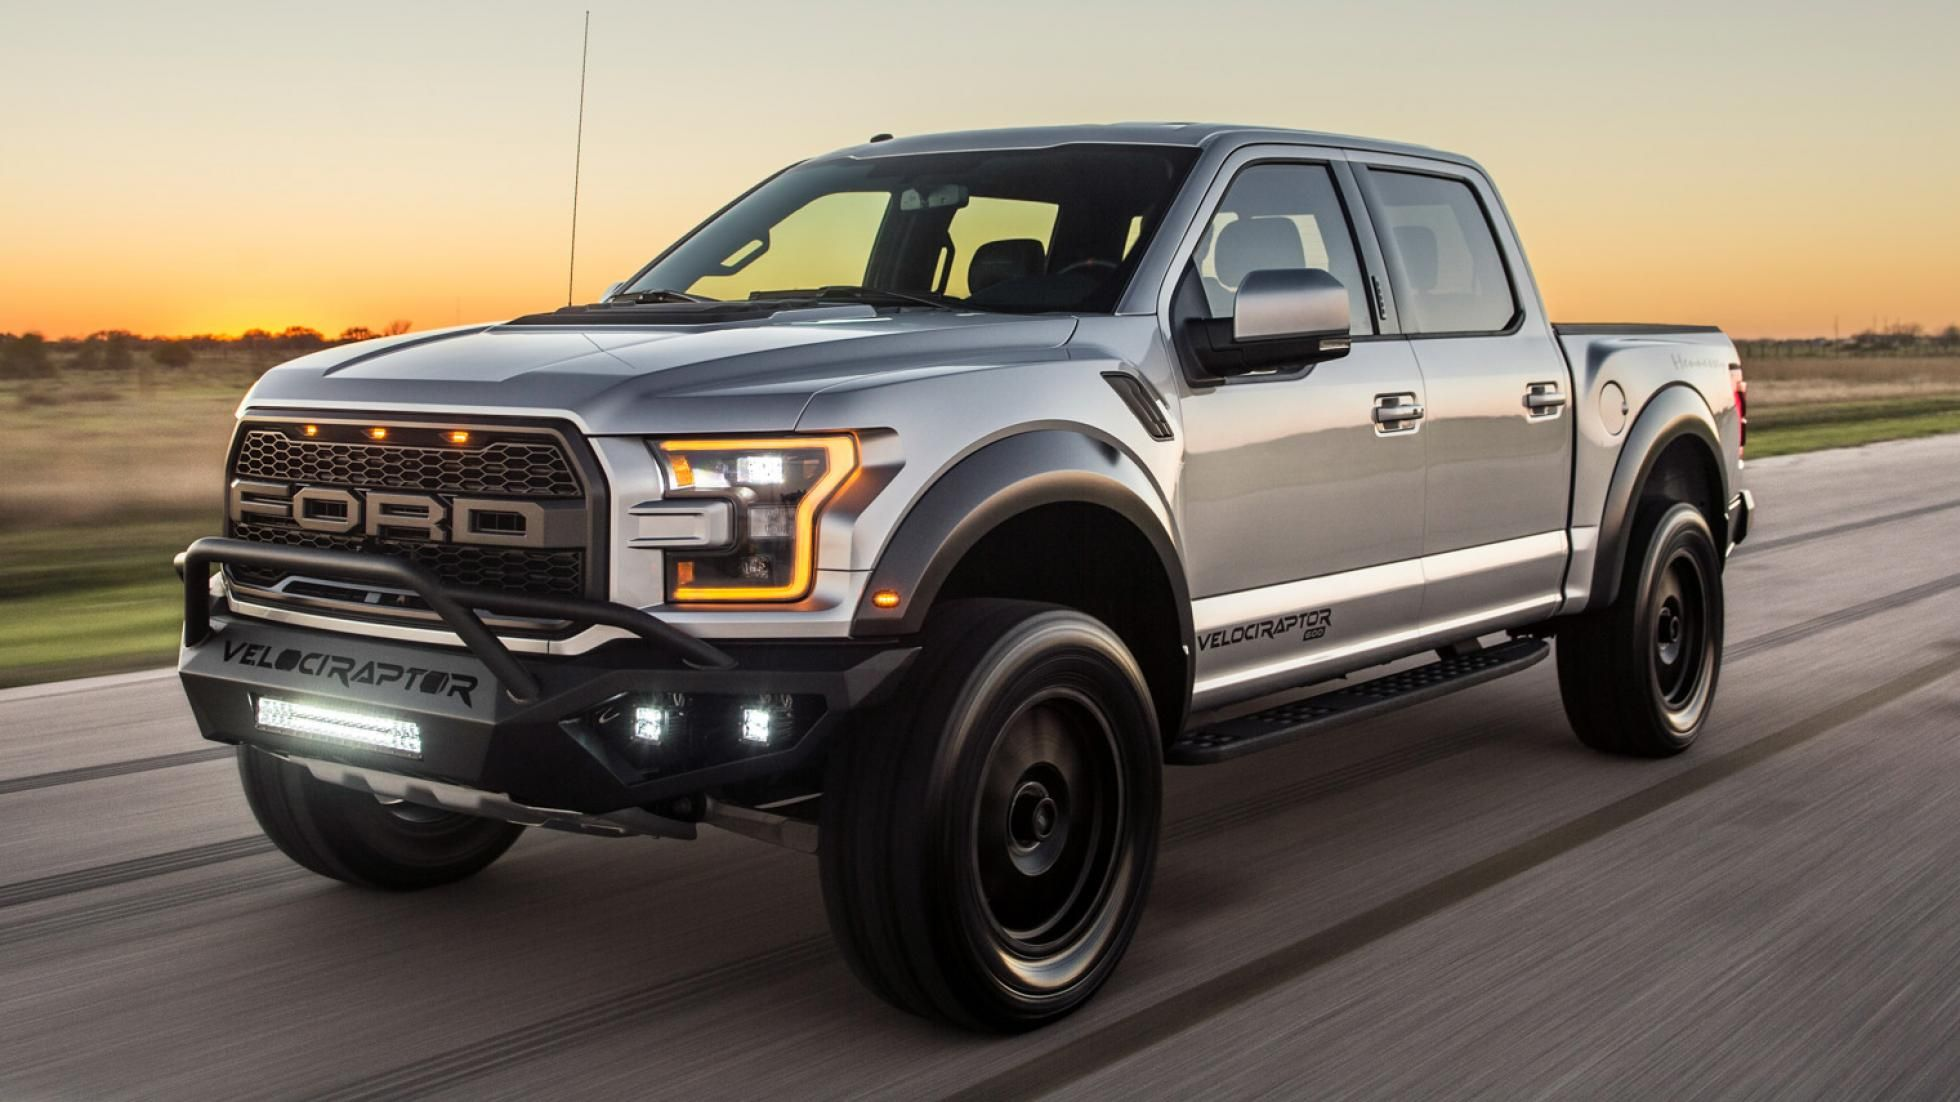 This Is The New Hennessey Velociraptor 700bhp Texan Tuned Ford F150 Raptor Here It Only Car You Ll Ever Need Rowan Horncastle 28 Feb 2017